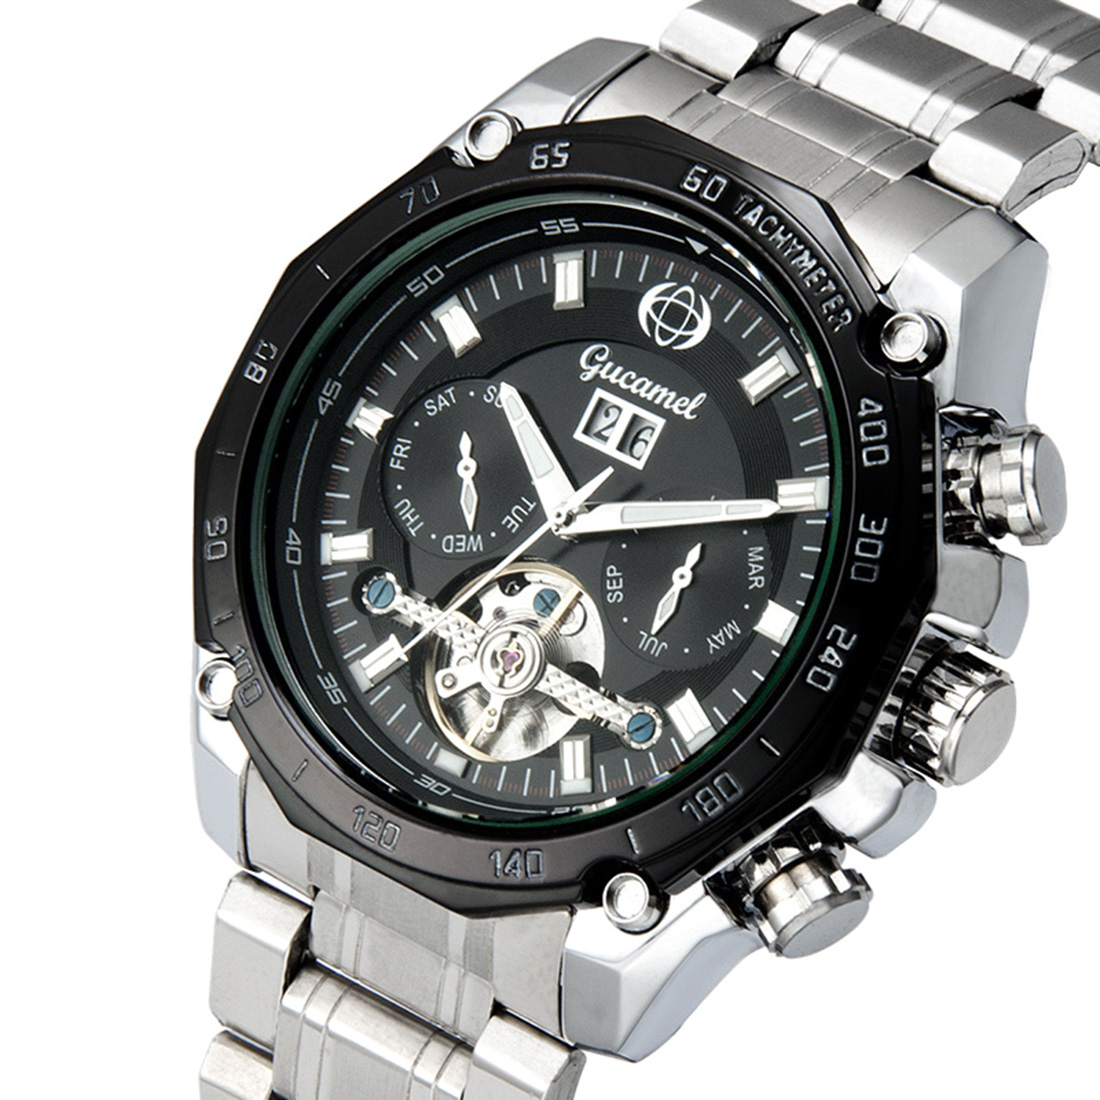 Top Luxury Brand Men Watch Waterproof  Casual Man Watches Stainless Steel  Watch Relogio Masculino <br>